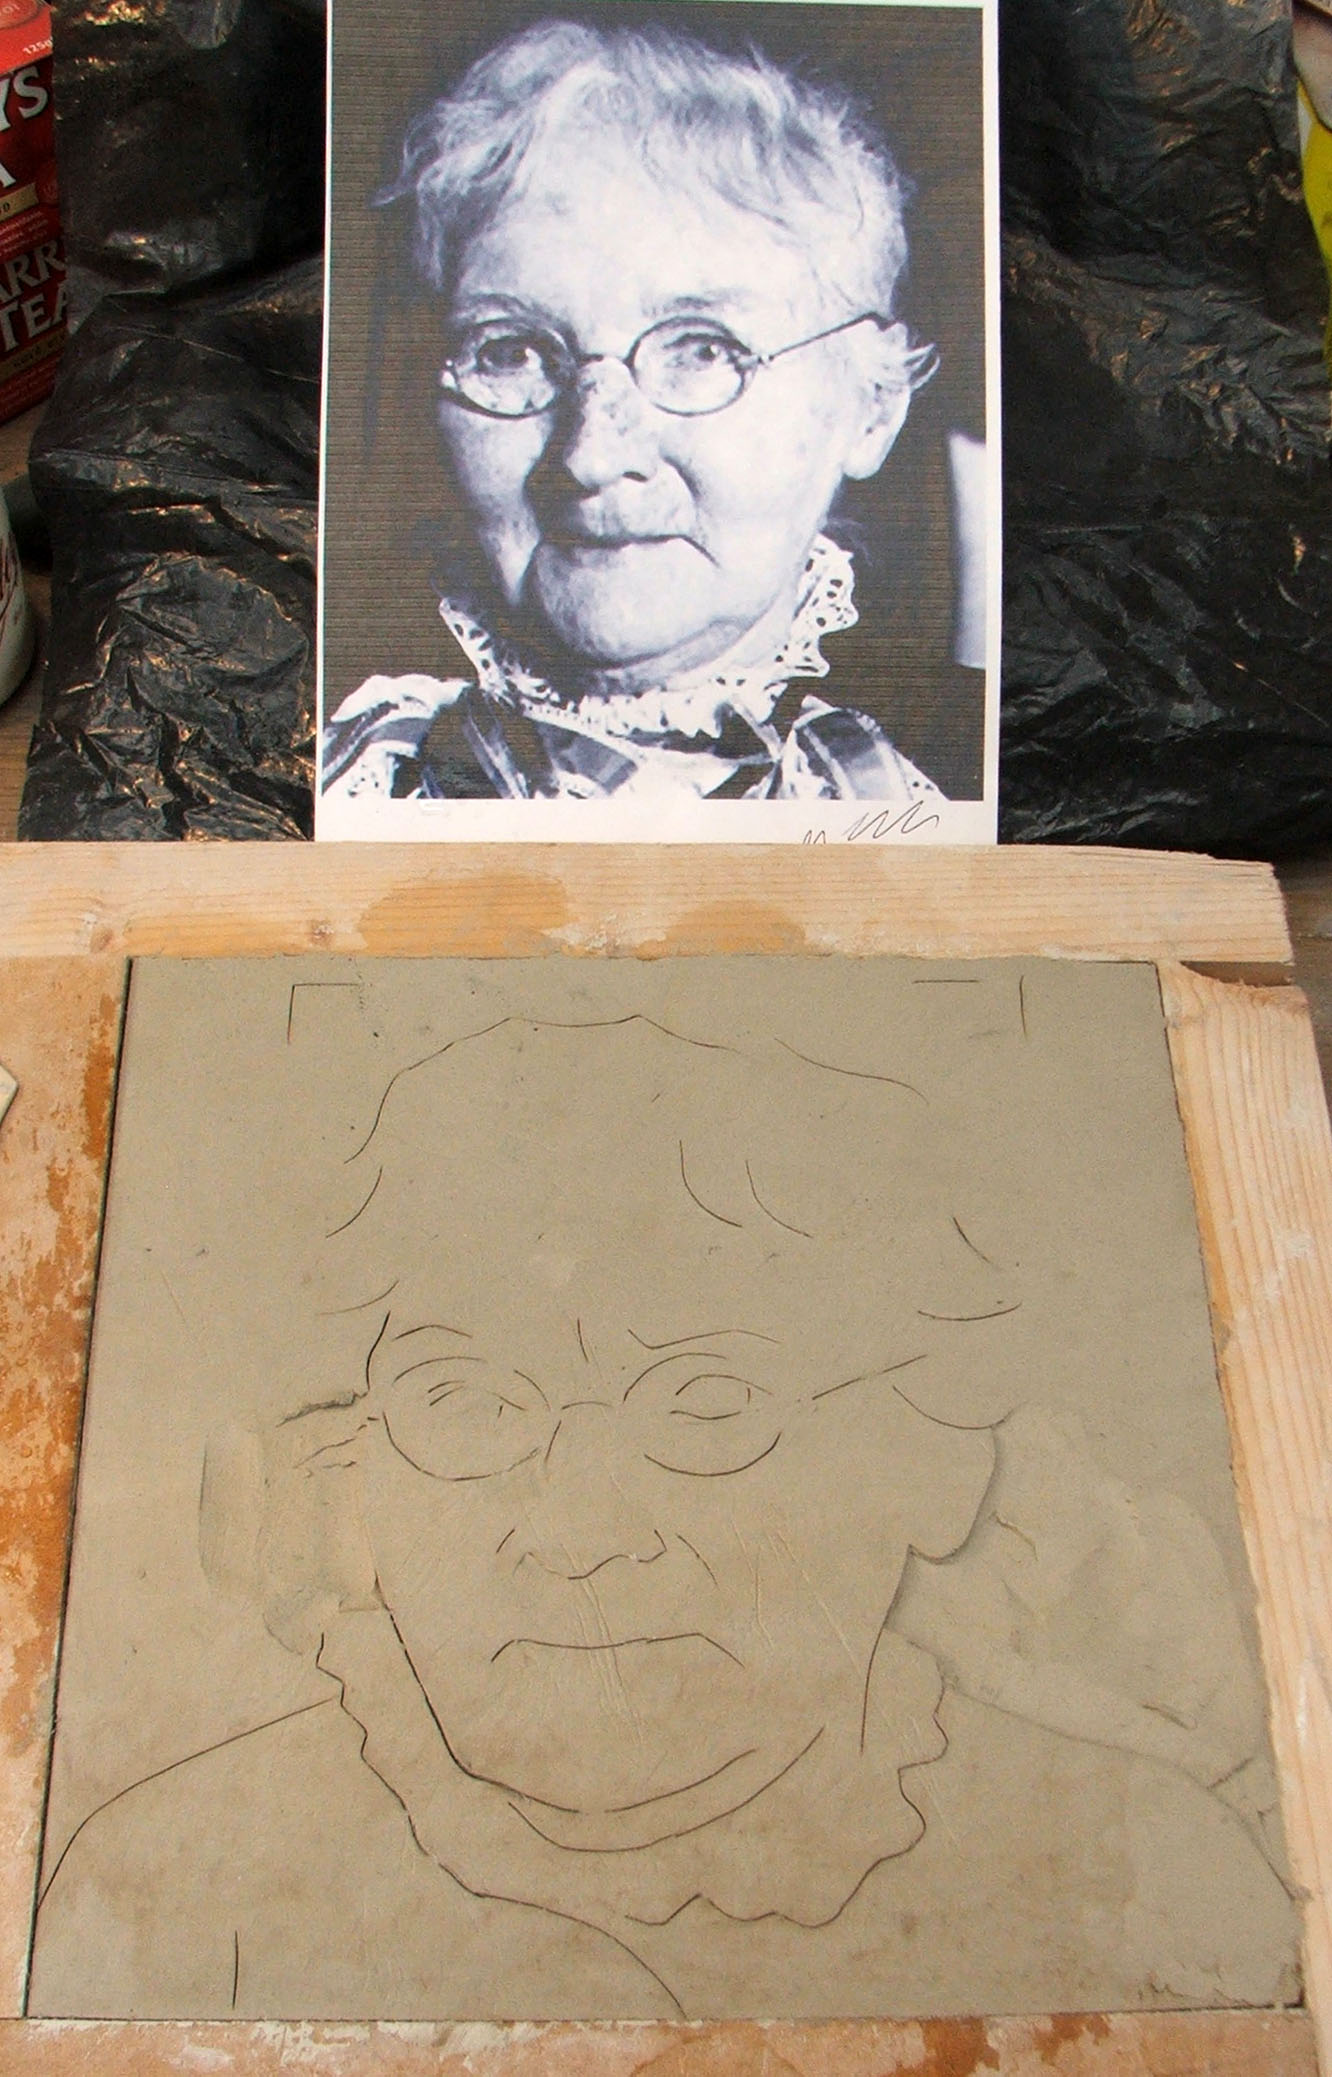 The making of a monument mother jones cork